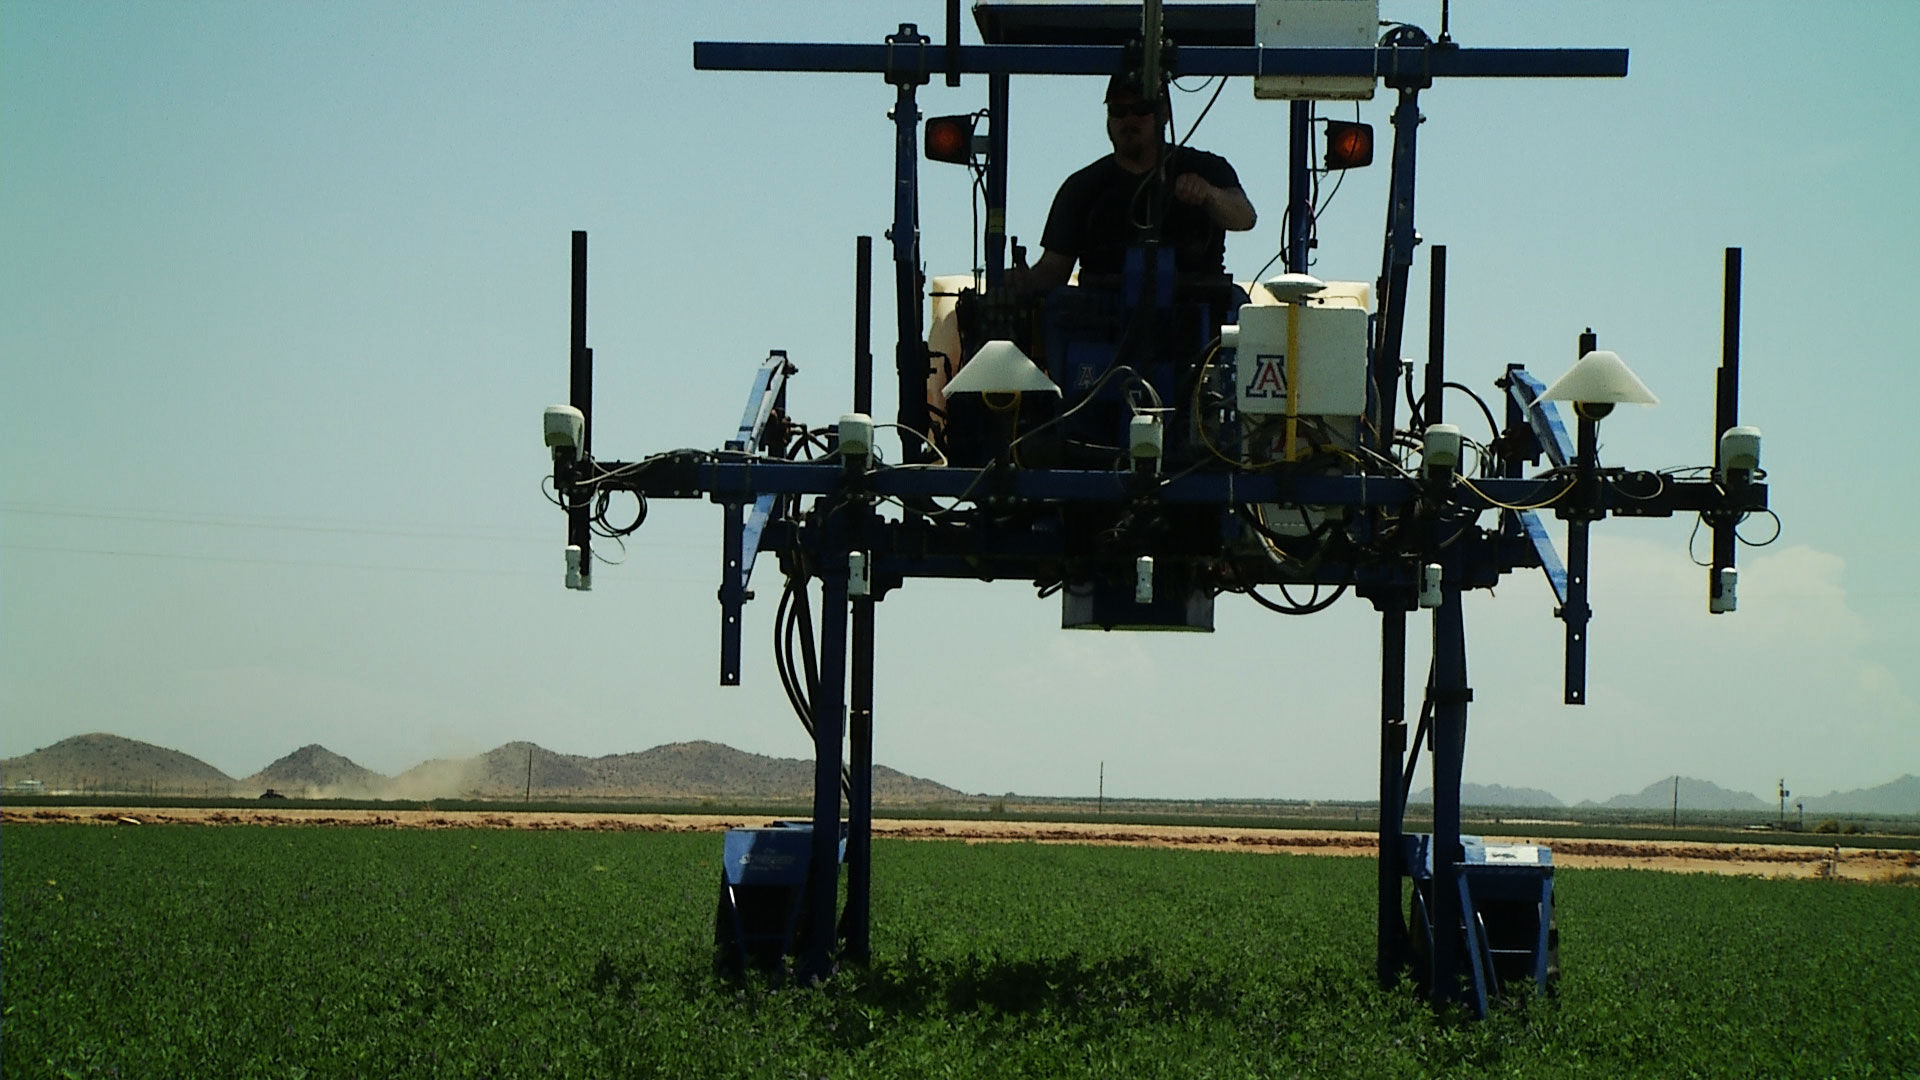 John Heun operates a mobile platform in an alfalfa field at the Maricopa Agricultural Center on July 26, 2019. The mobile platform is equipped with technology used for research in precision agriculture conducted by the University of Arizona College of Agriculture and Life Sciences.